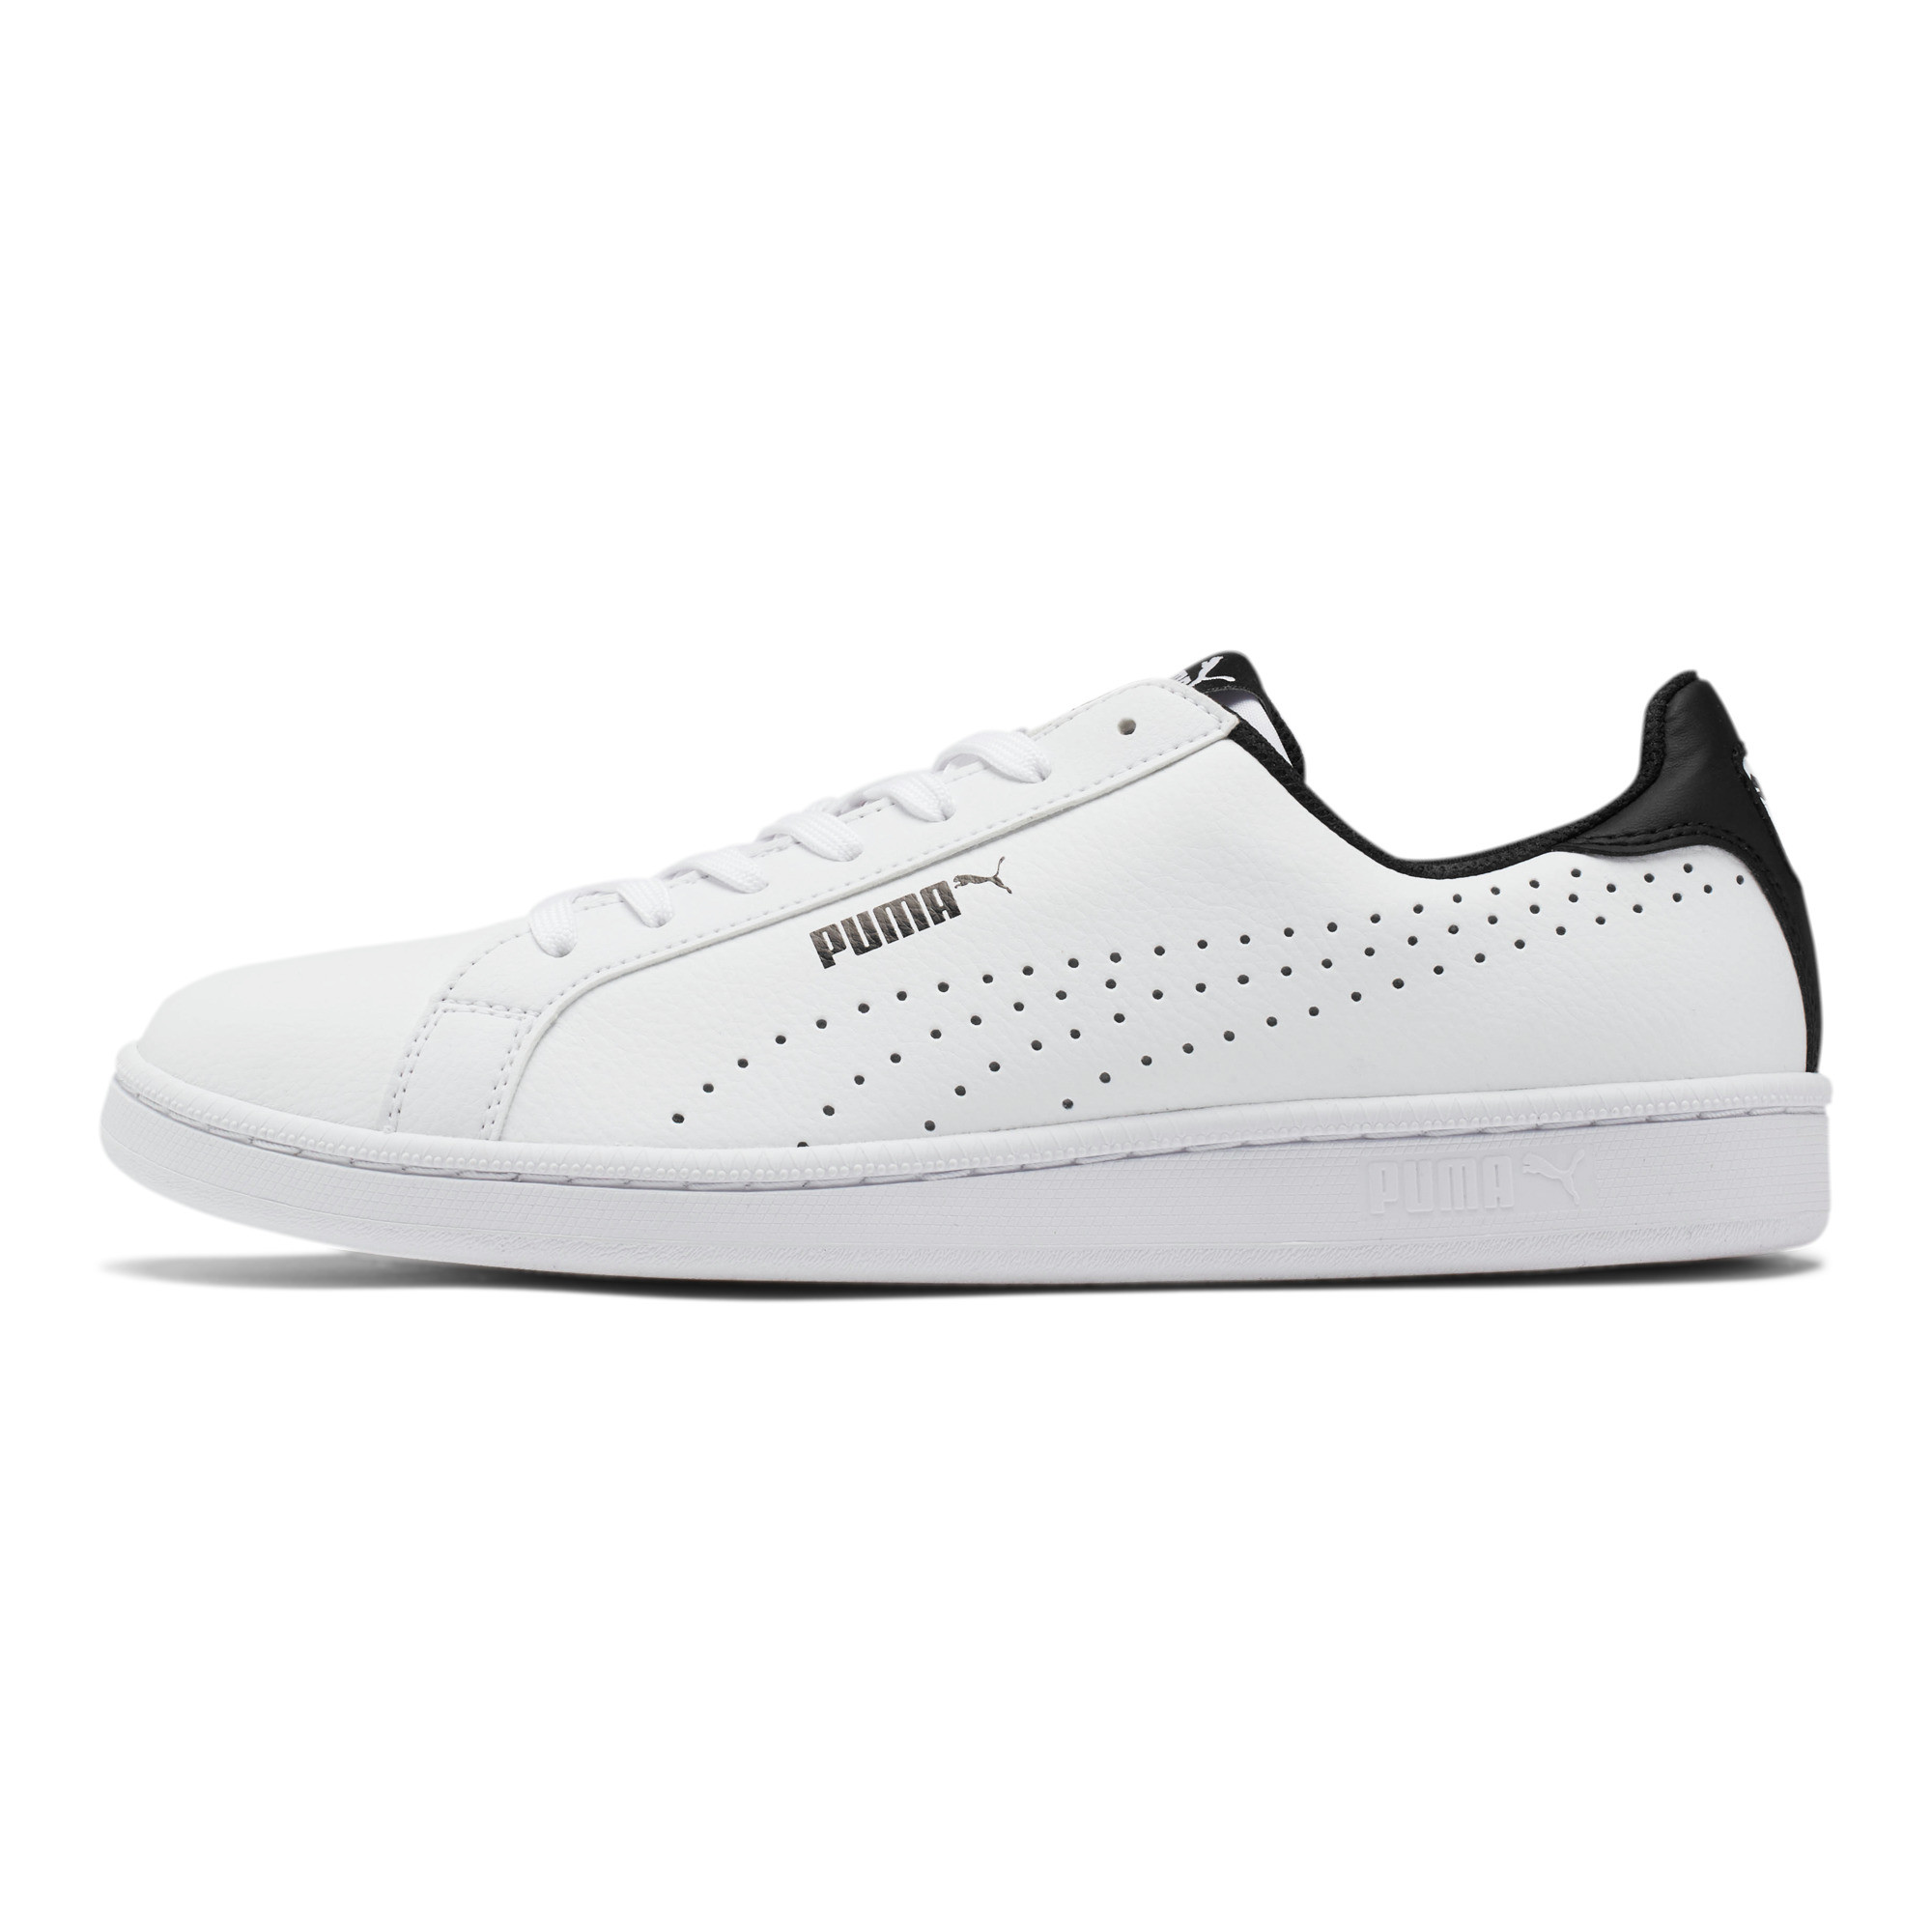 PUMA-PUMA-Smash-Perf-Men-039-s-Sneakers-Men-Shoe-Basics thumbnail 14